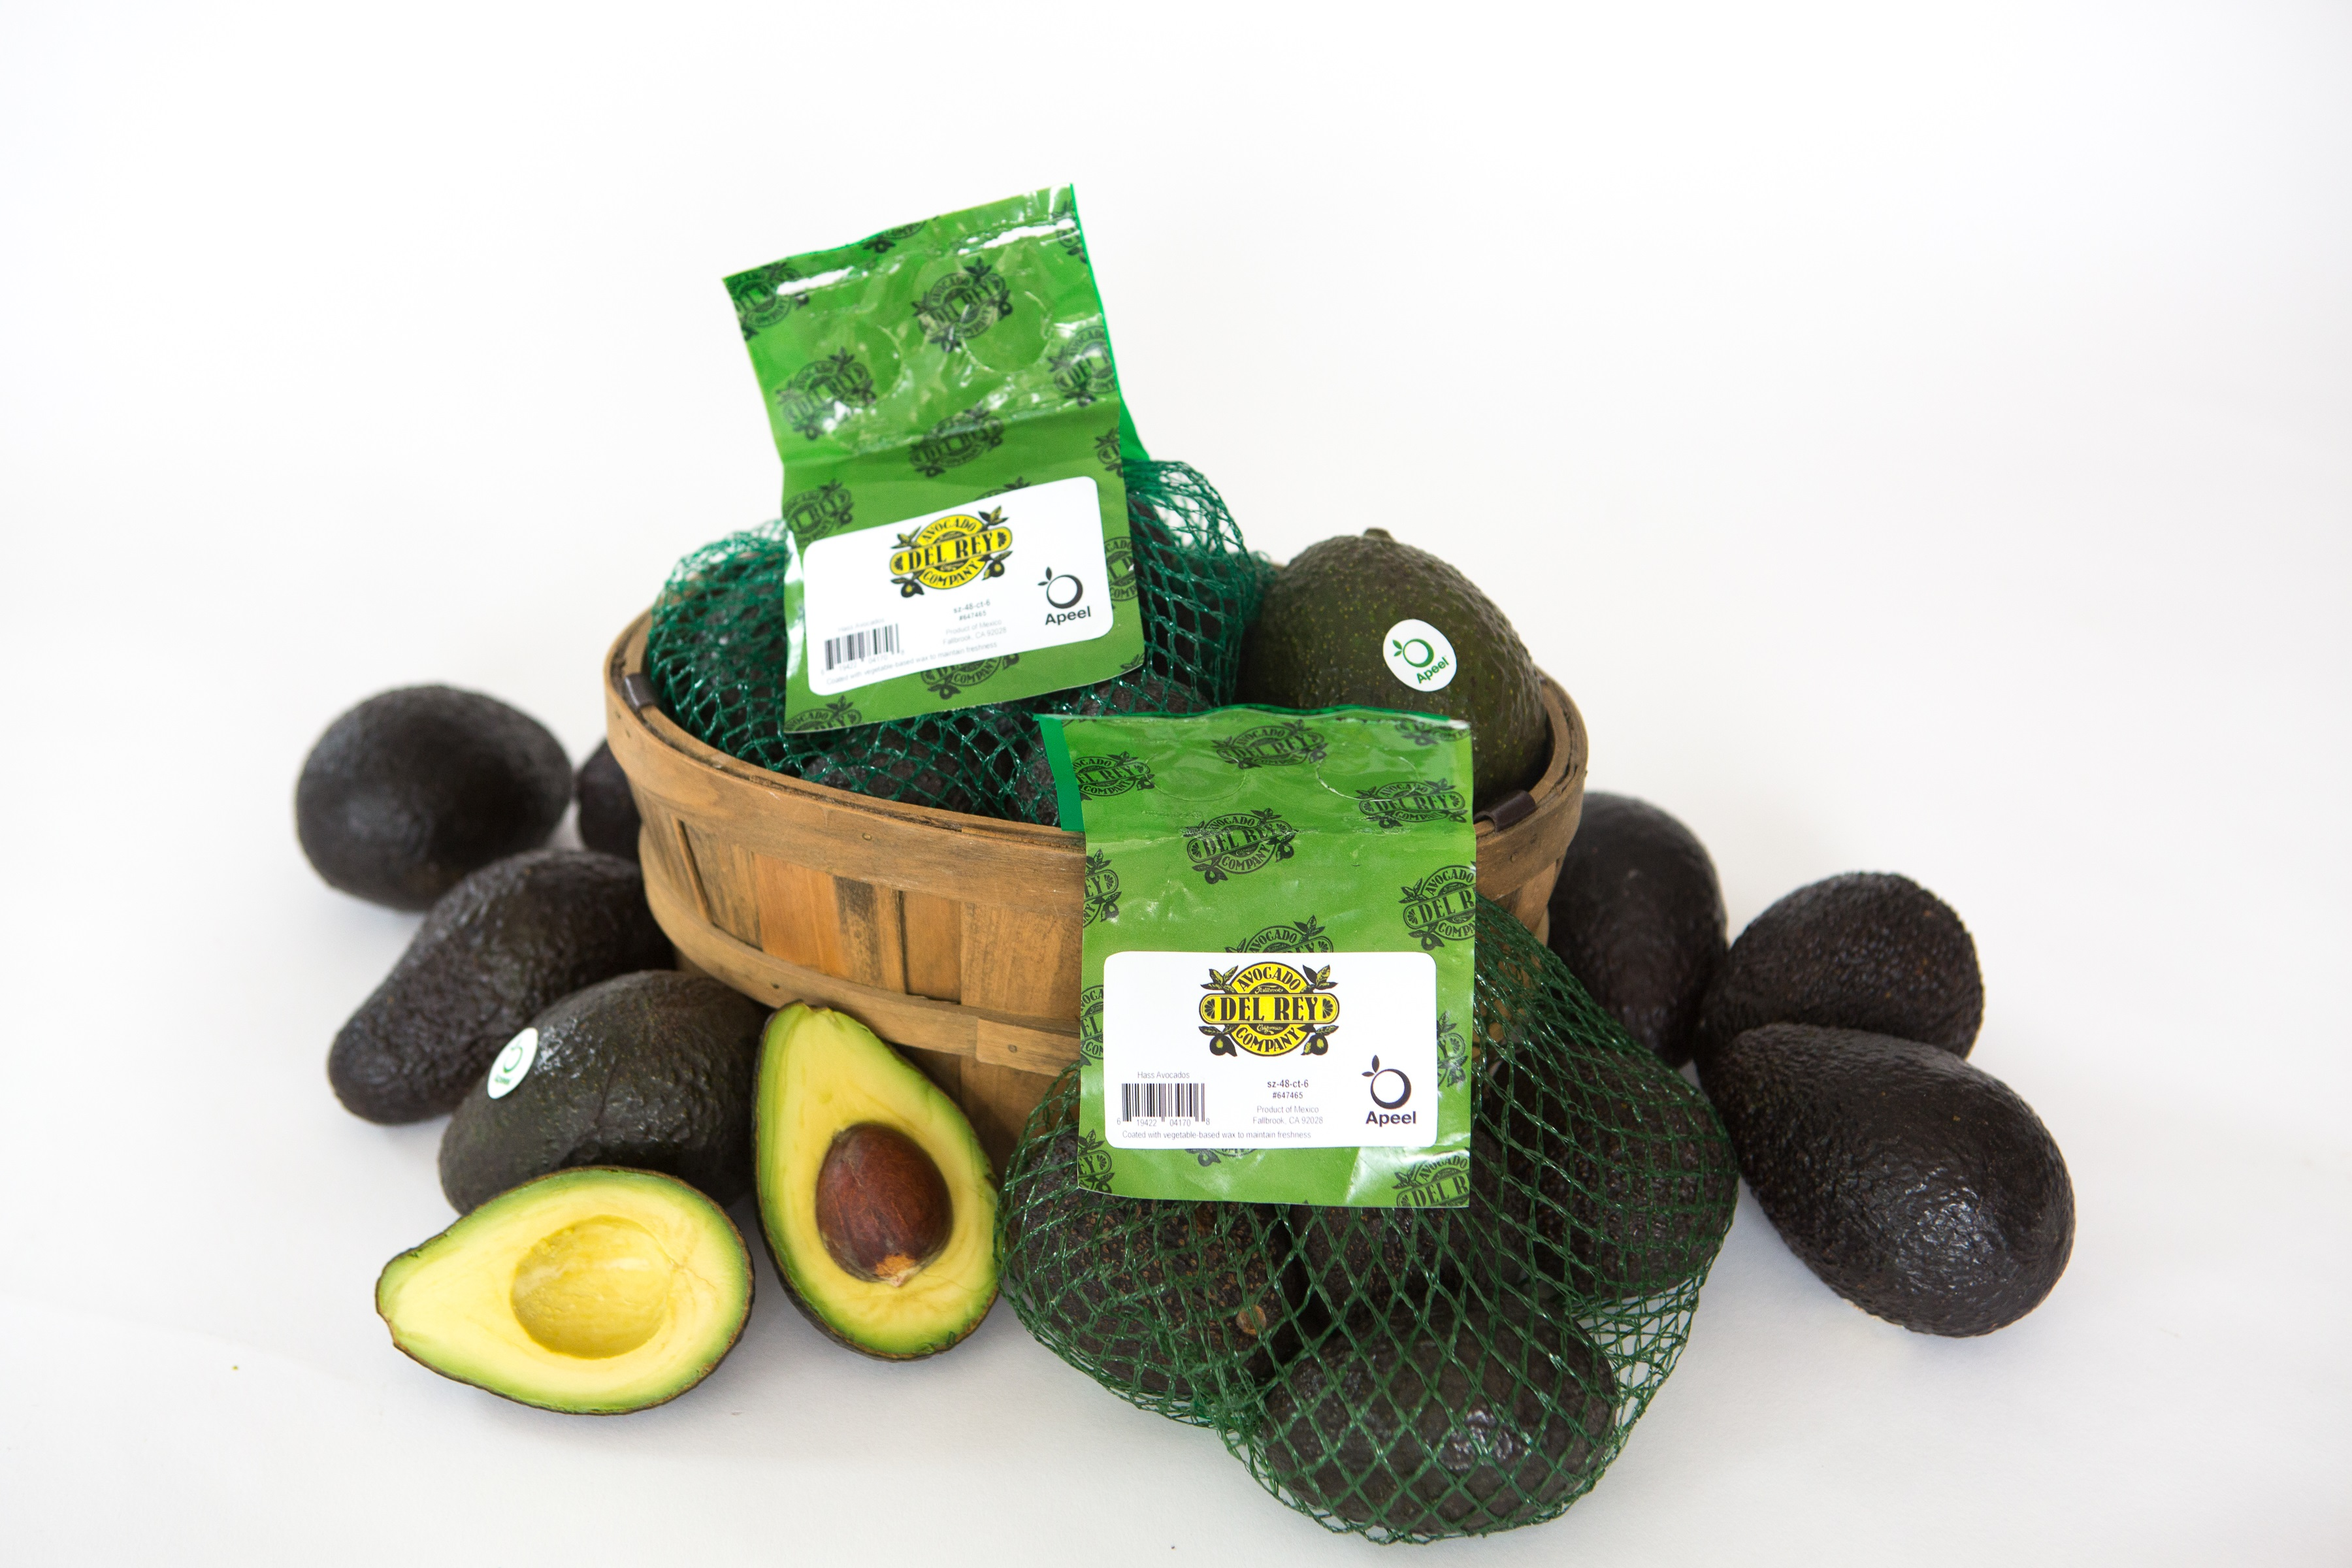 Apeel avocados with label